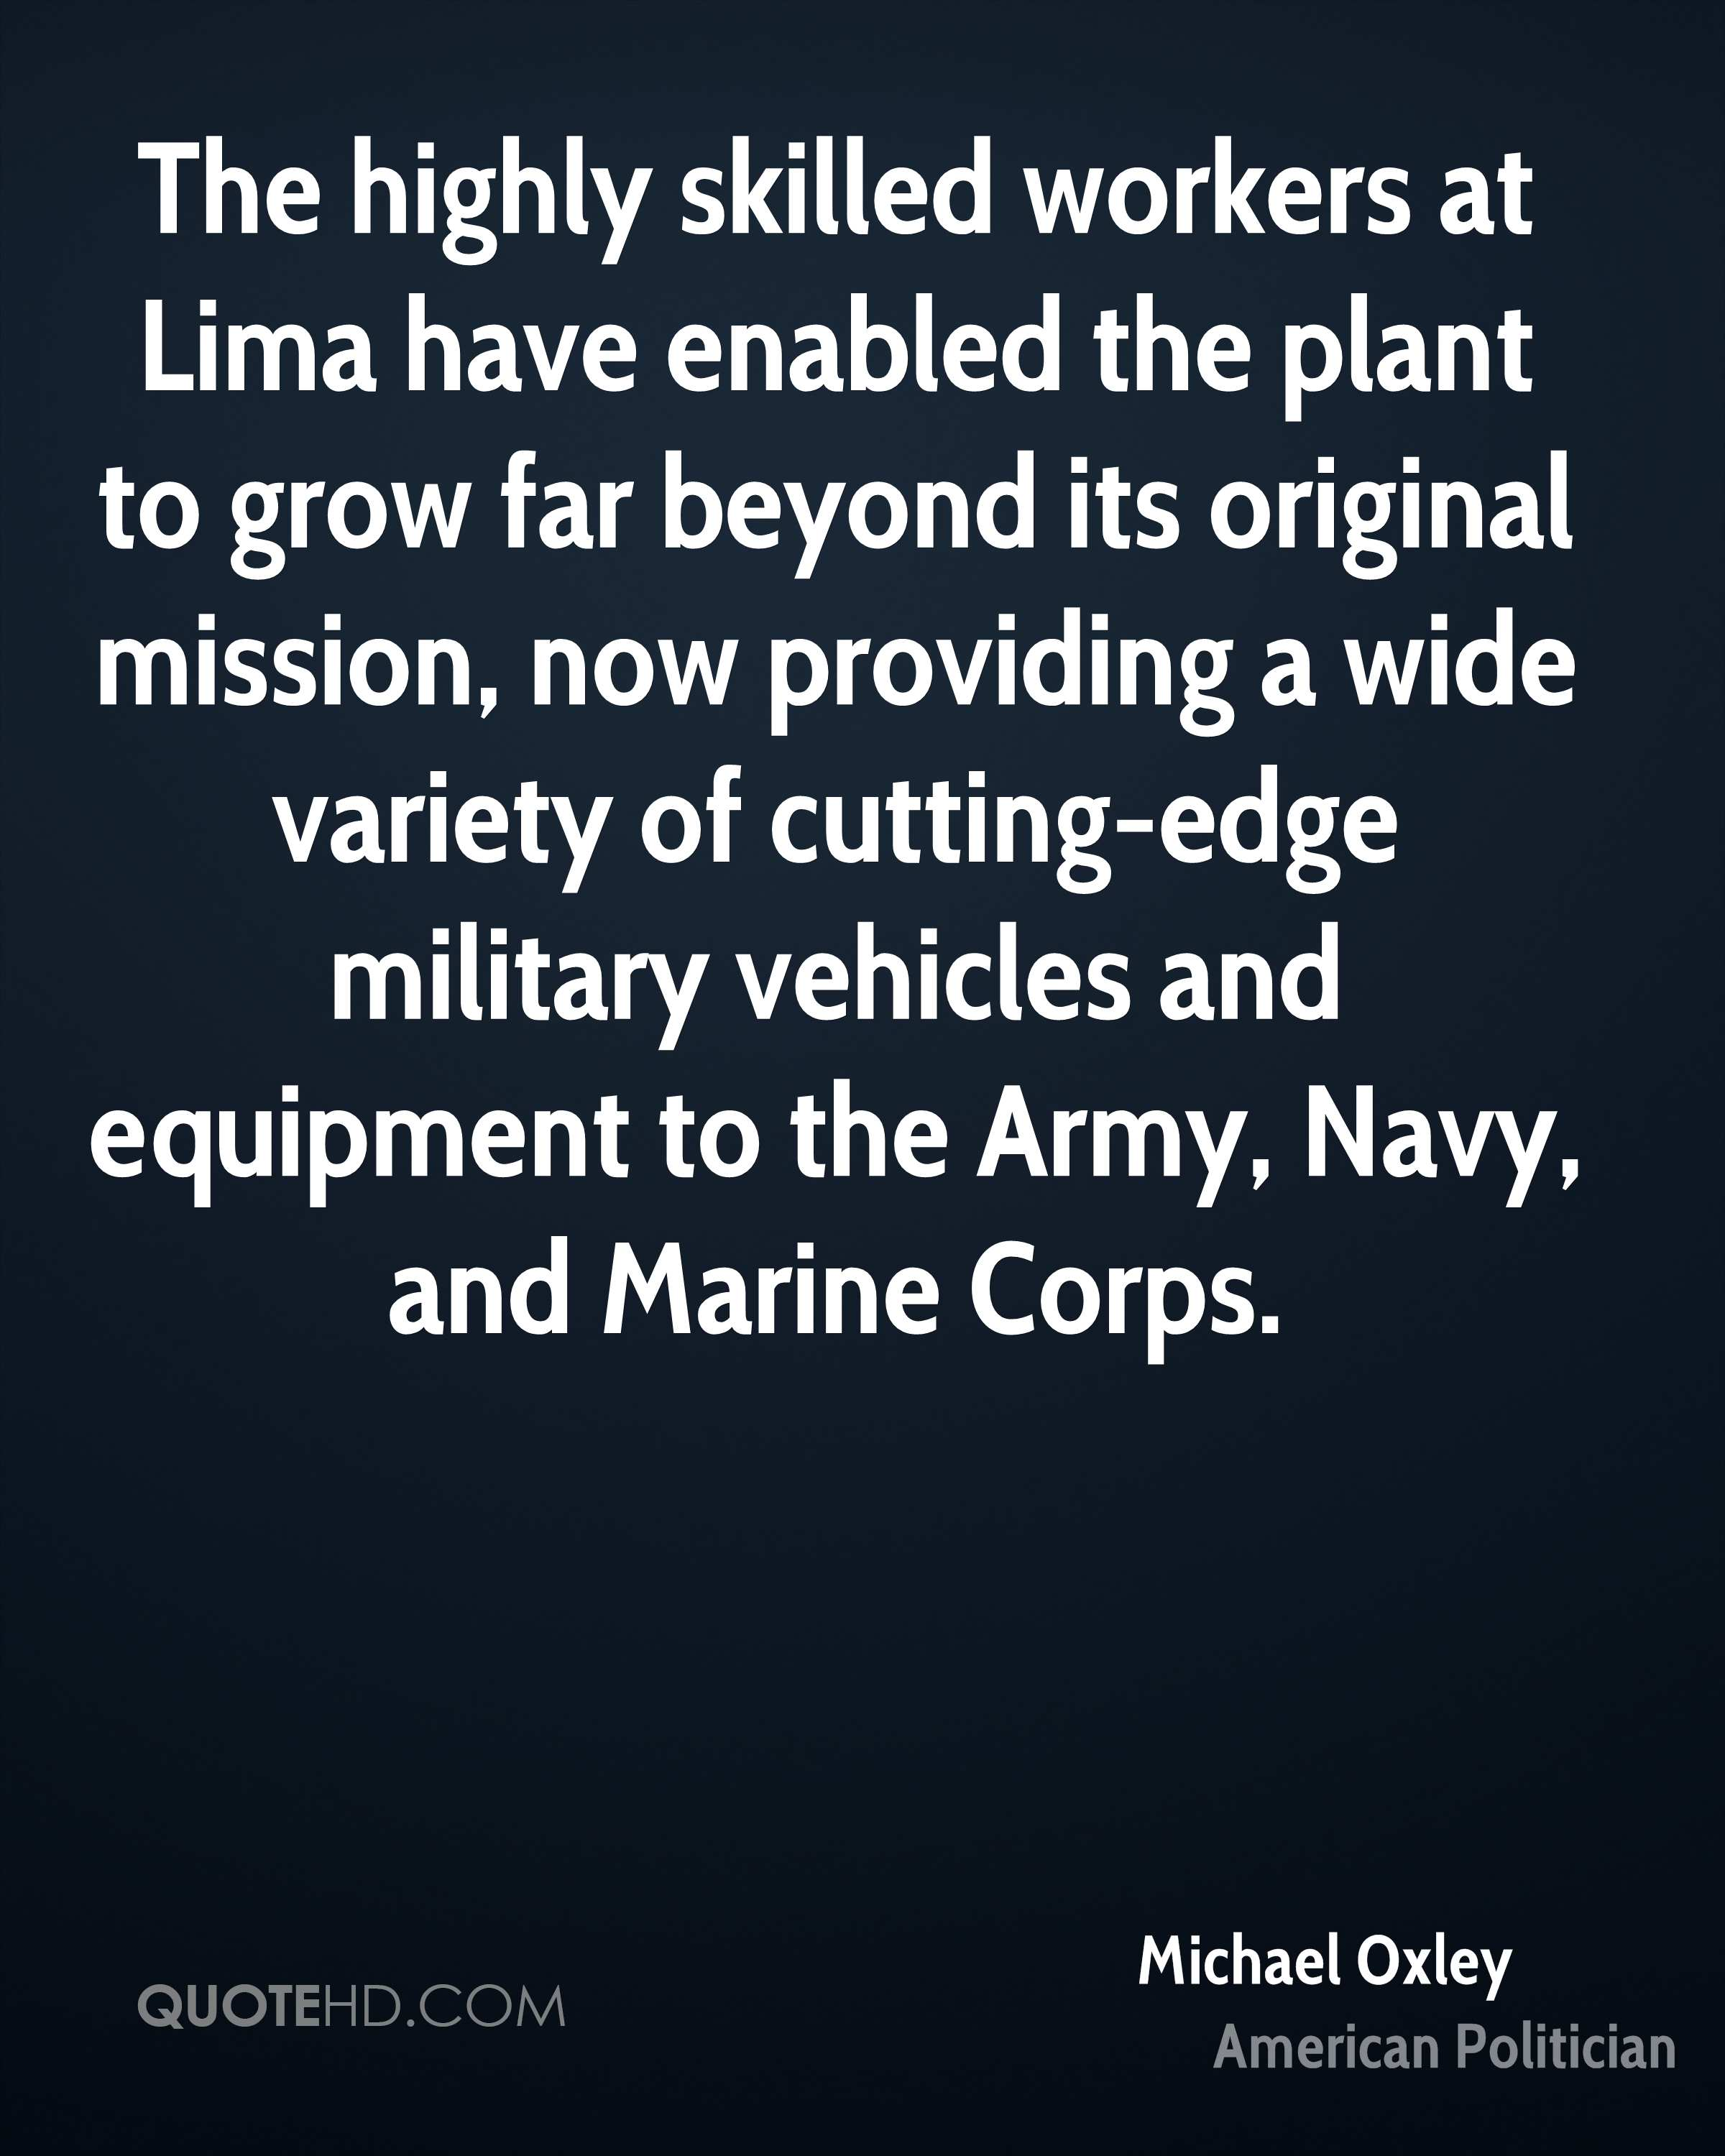 The highly skilled workers at Lima have enabled the plant to grow far beyond its original mission, now providing a wide variety of cutting-edge military vehicles and equipment to the Army, Navy, and Marine Corps.